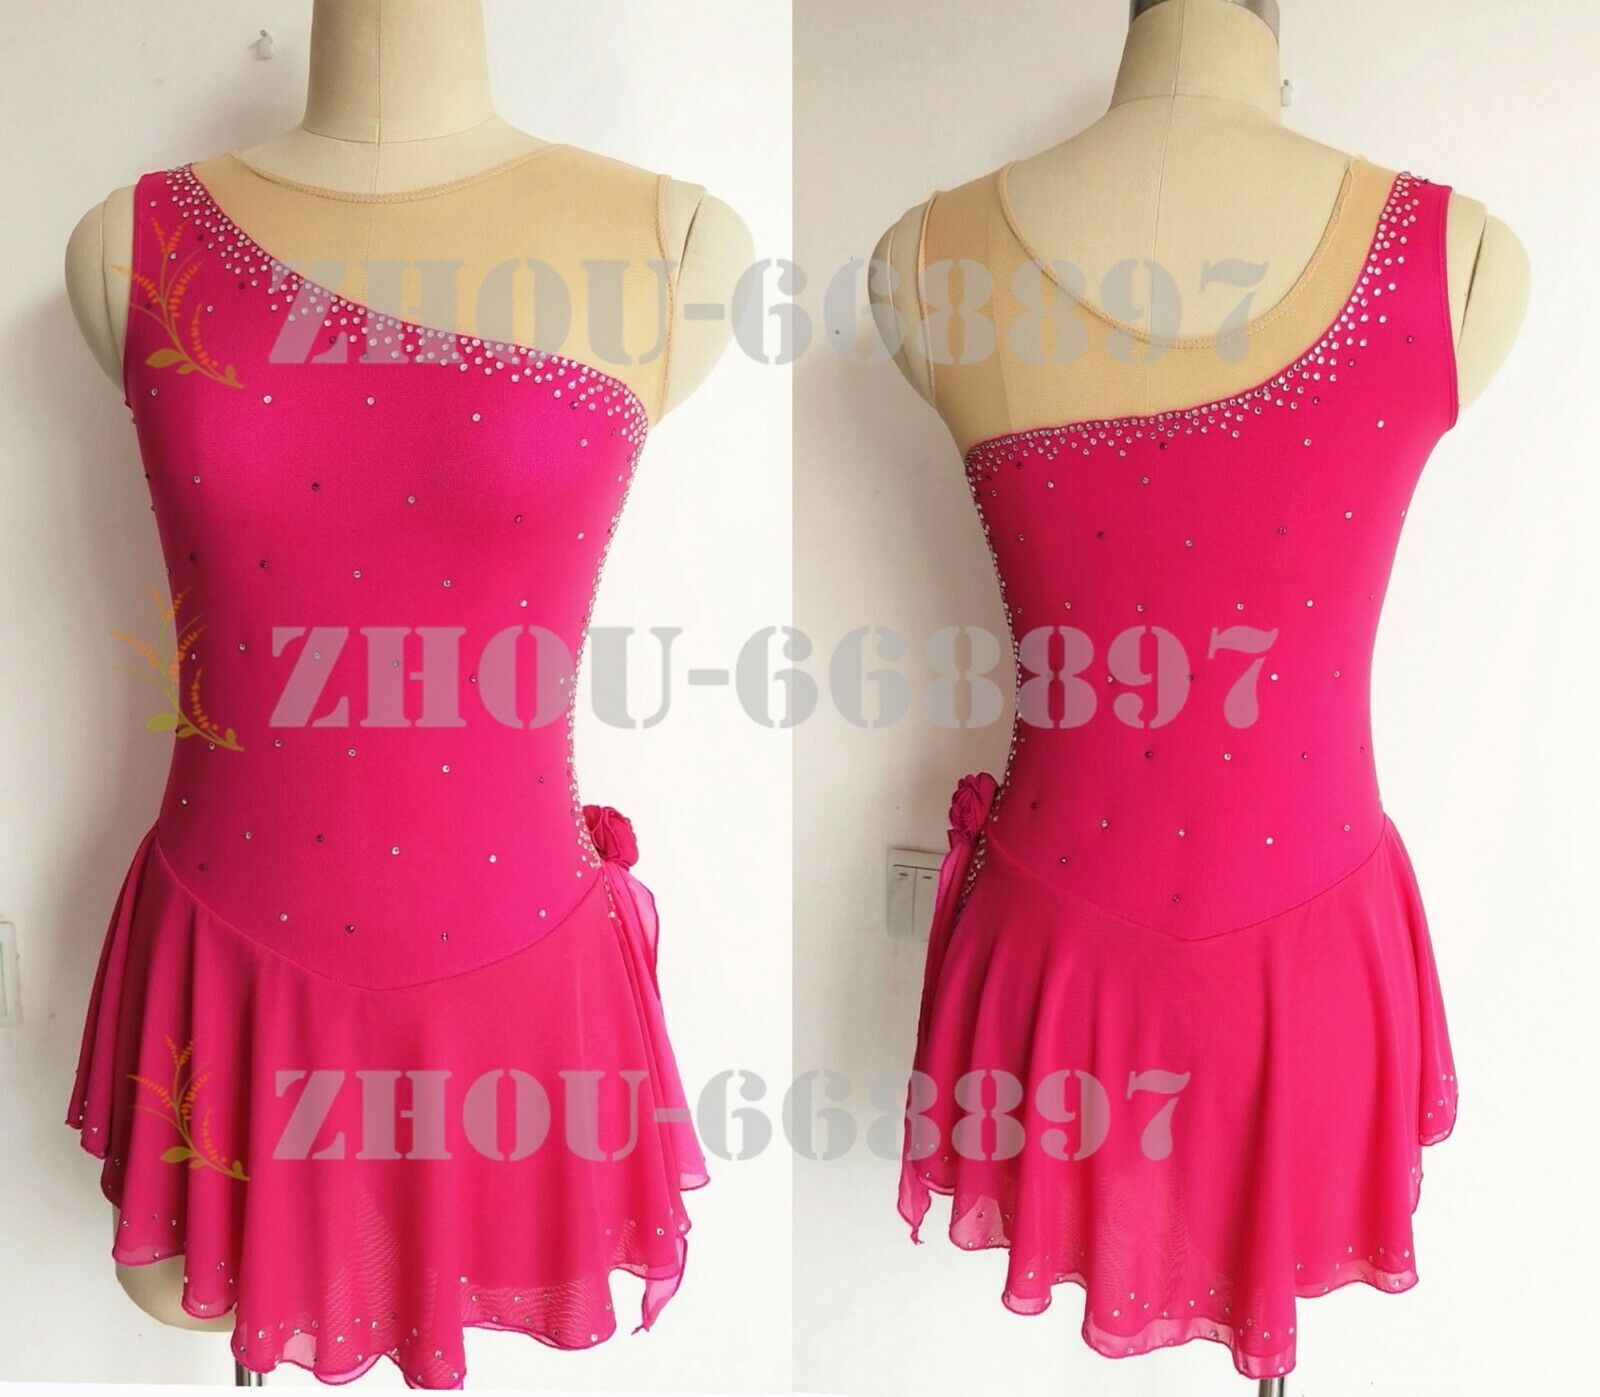 Competition ice  figure skating dress  ld women ice skating dress pink  shop makes buying and selling